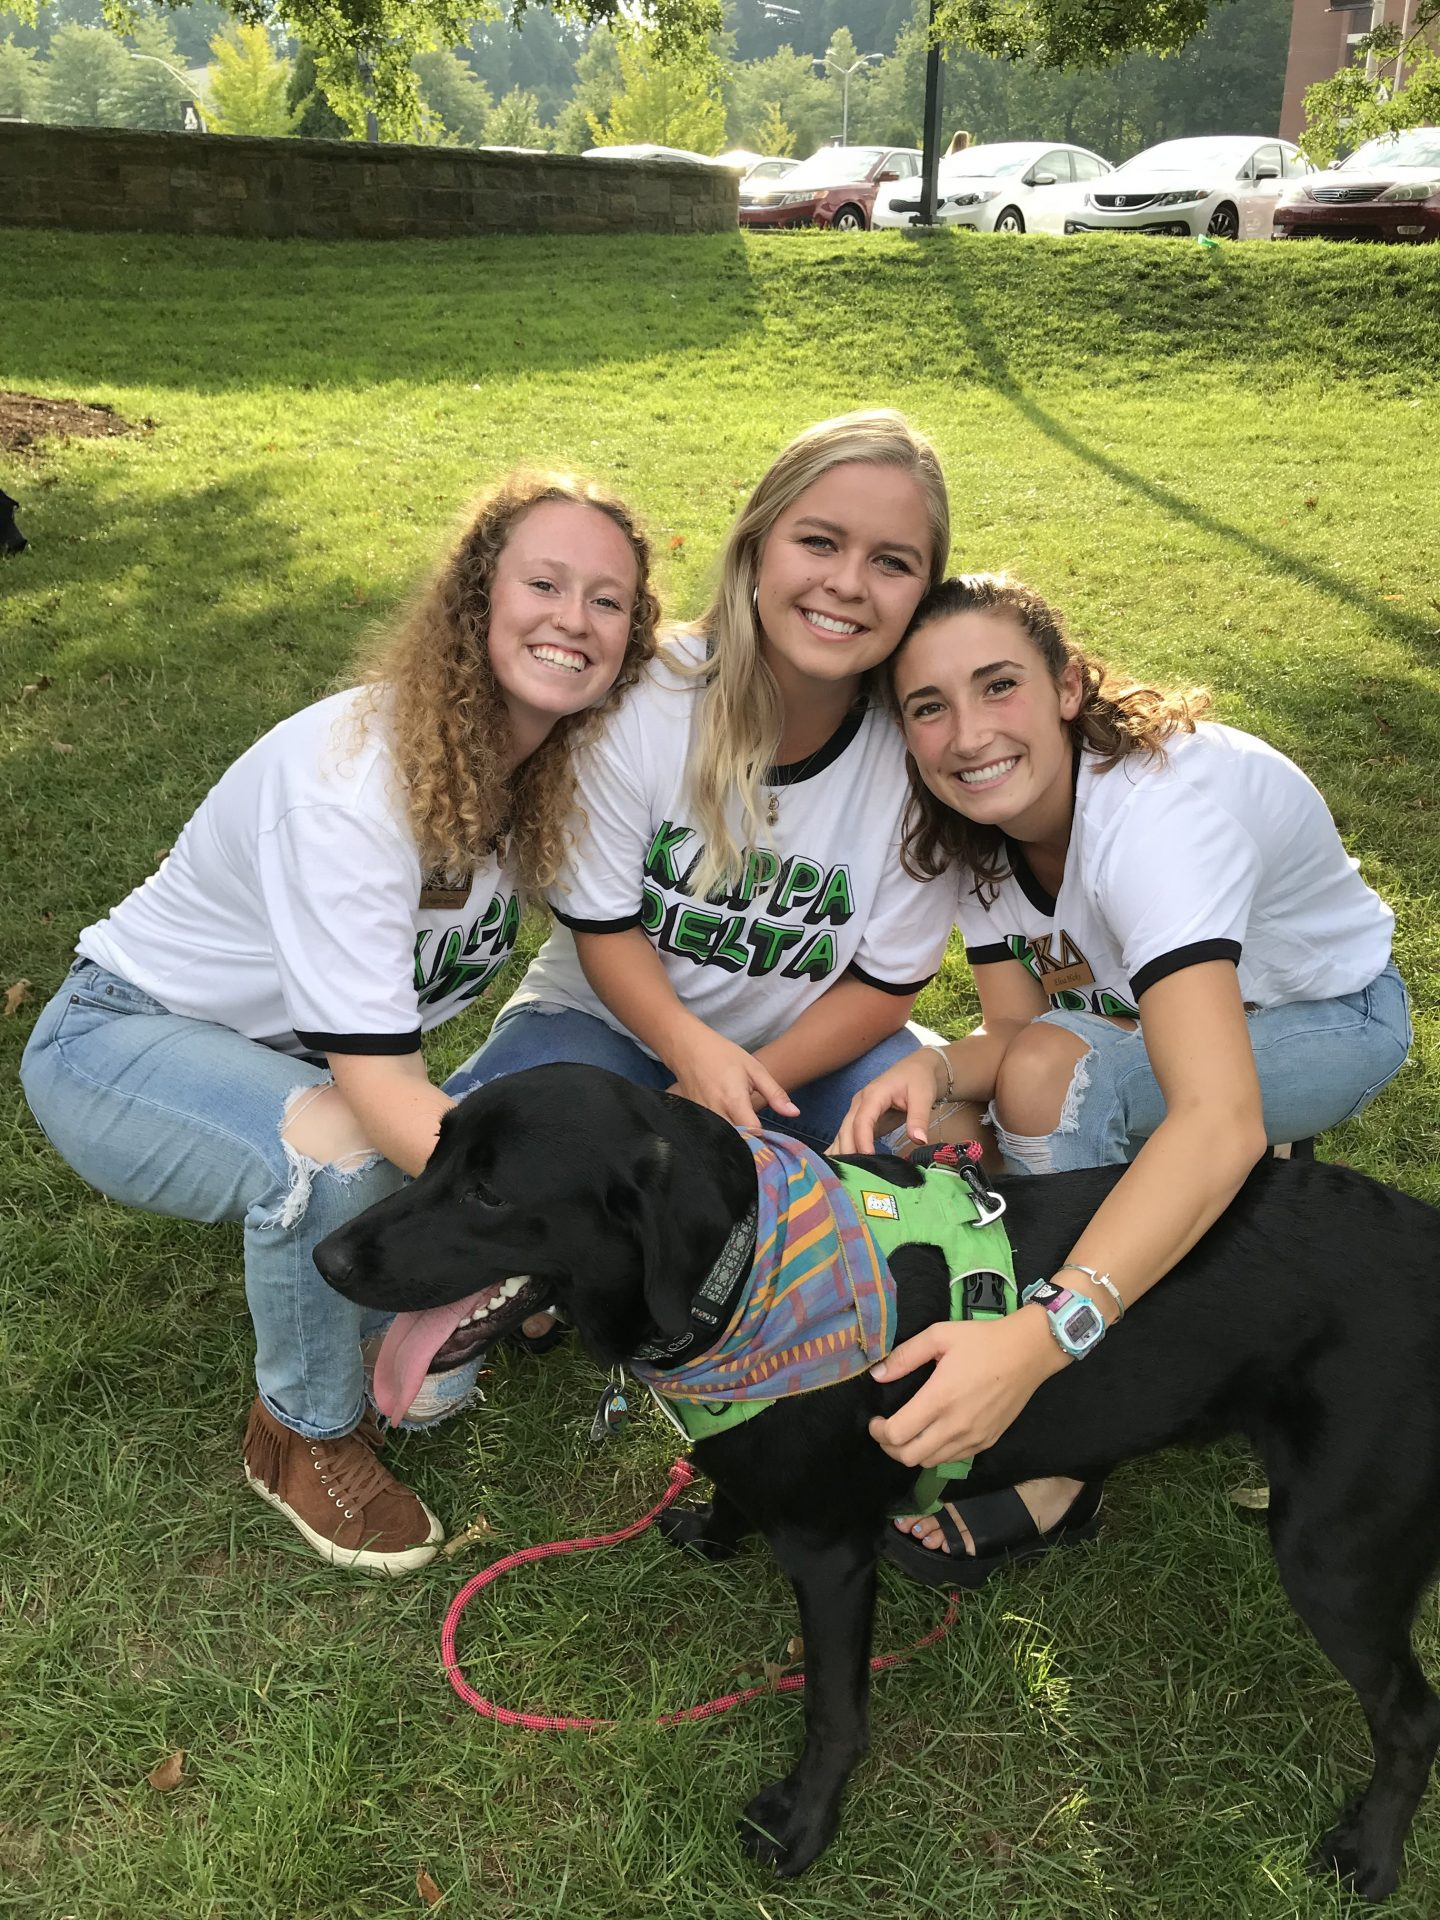 women in matching shirts with a dog outside